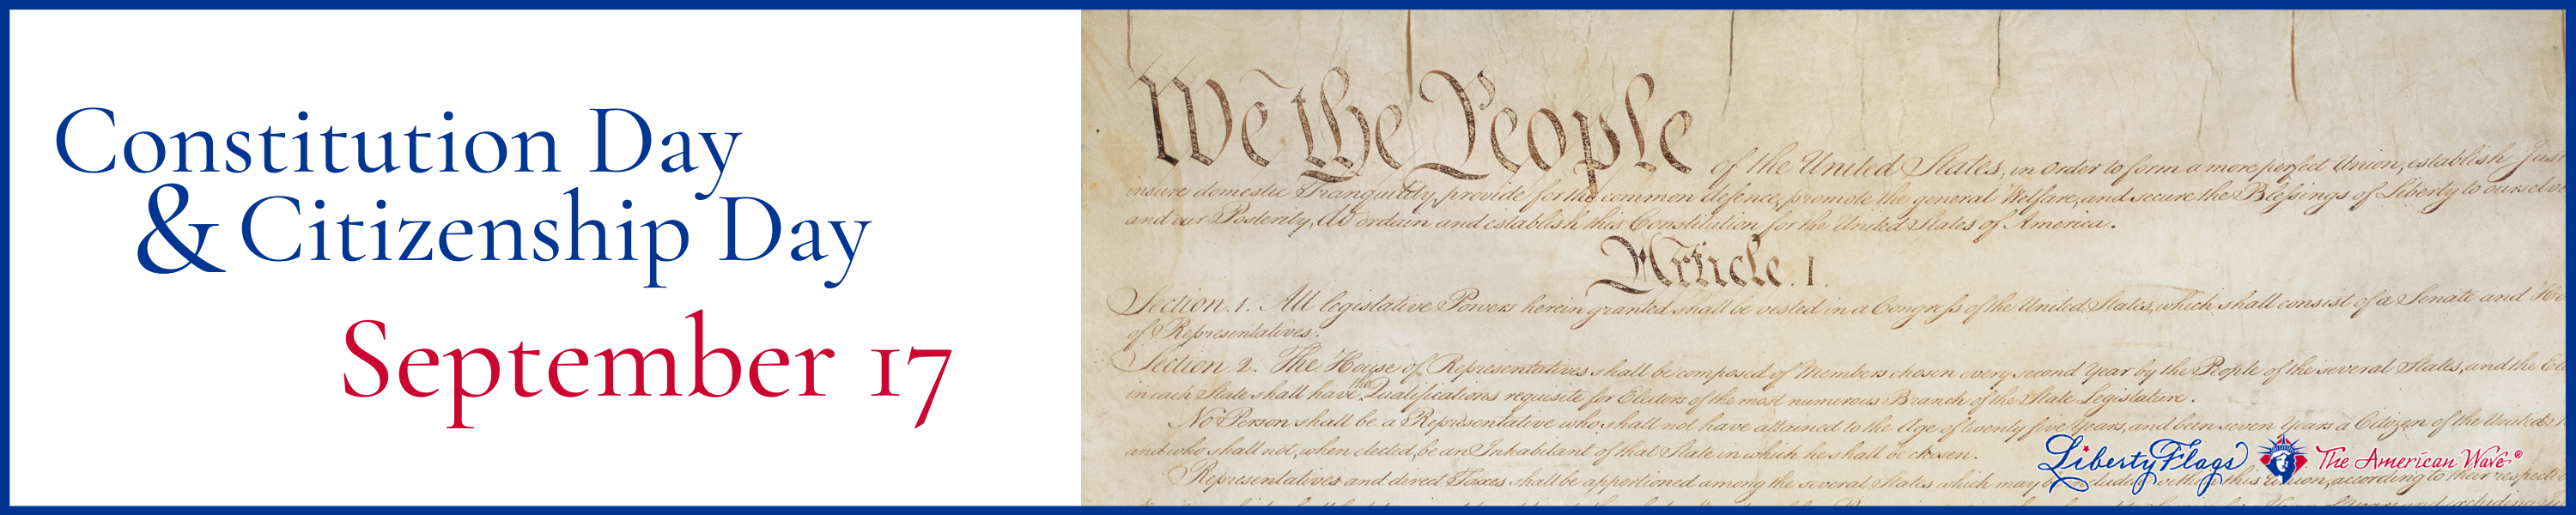 Constitution Day is September 17